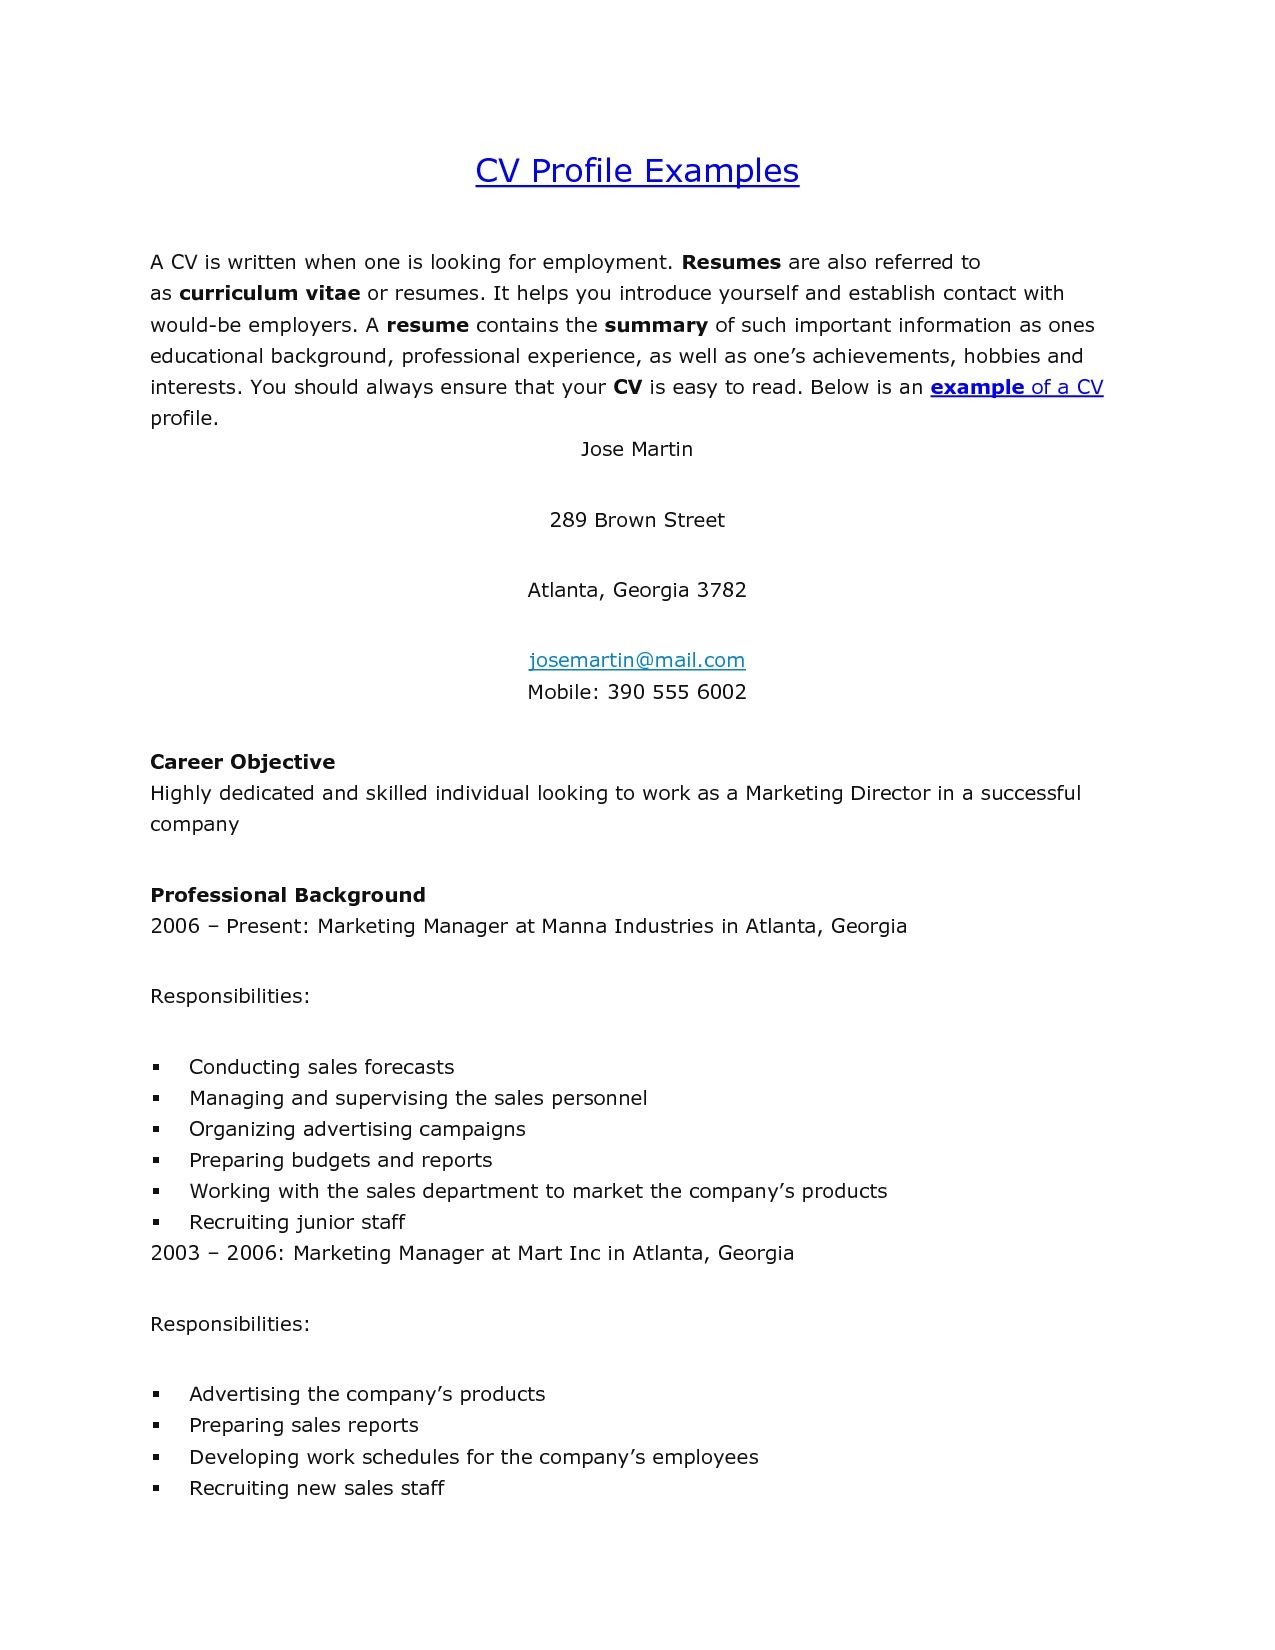 resume professional profile examples professional profile examples resume 31f5da894 - Profile Example For Resume